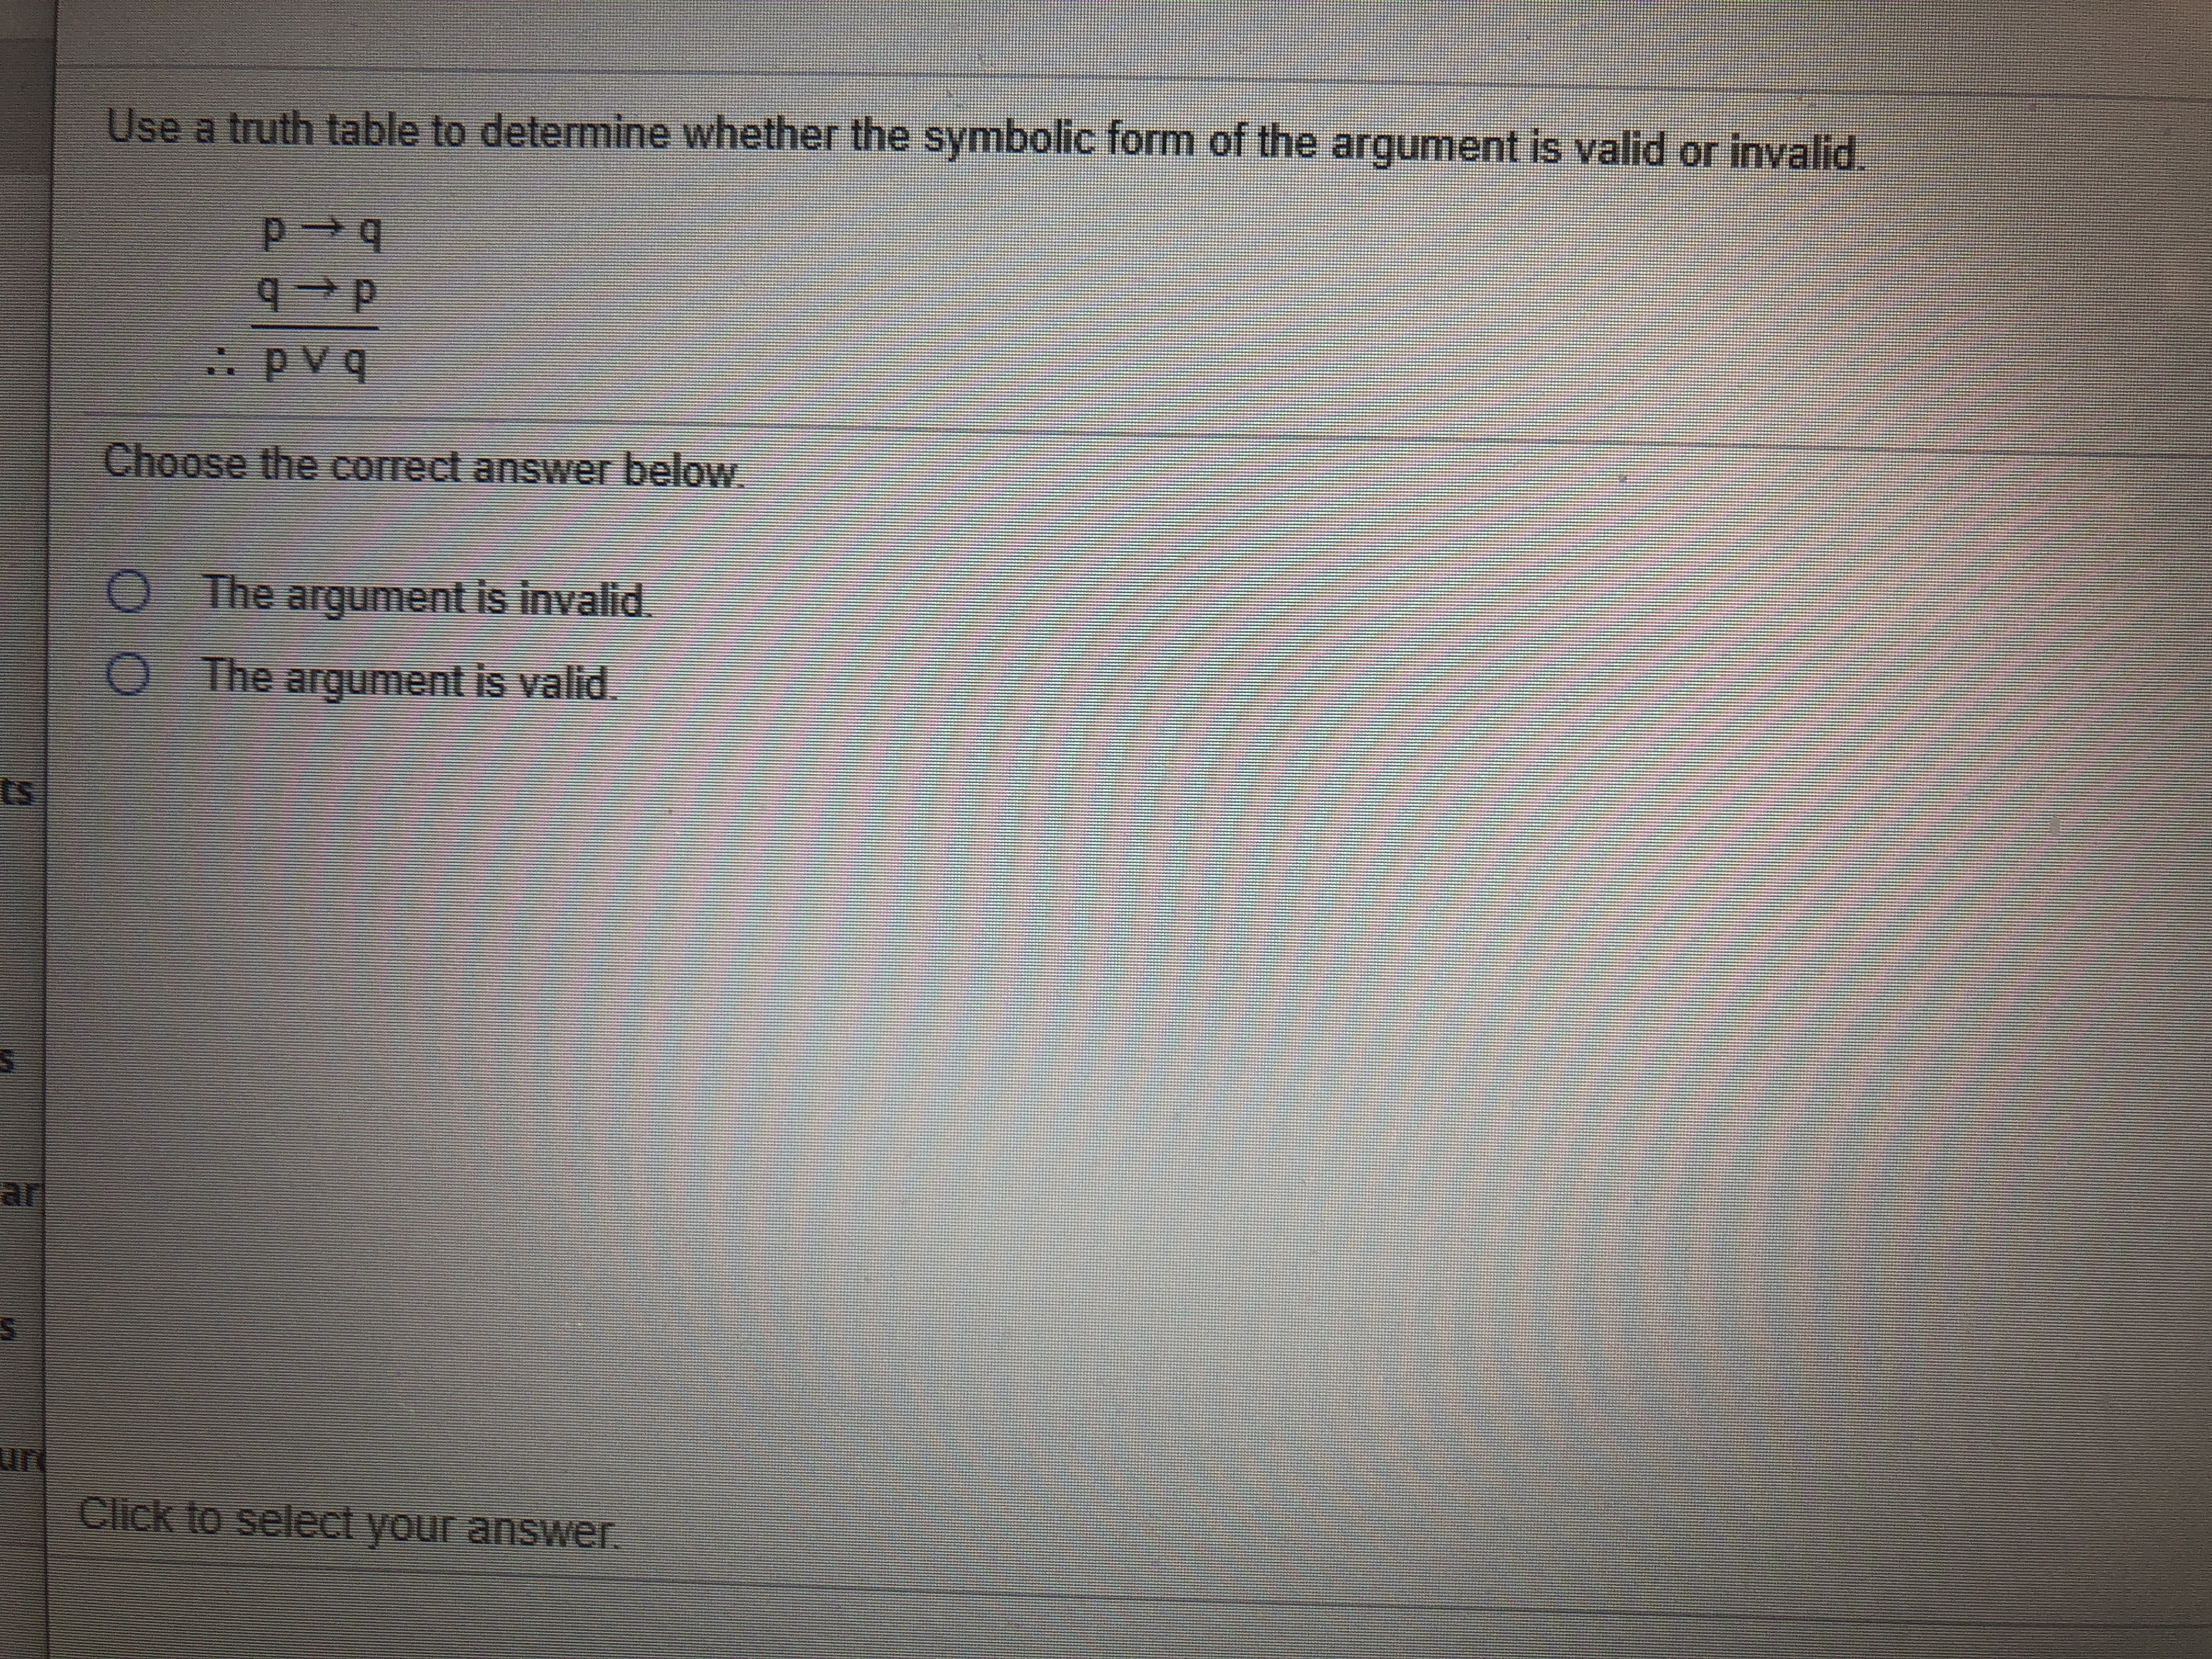 Use a truth table to determine whether the symbolic form of the argument is valid or invalid